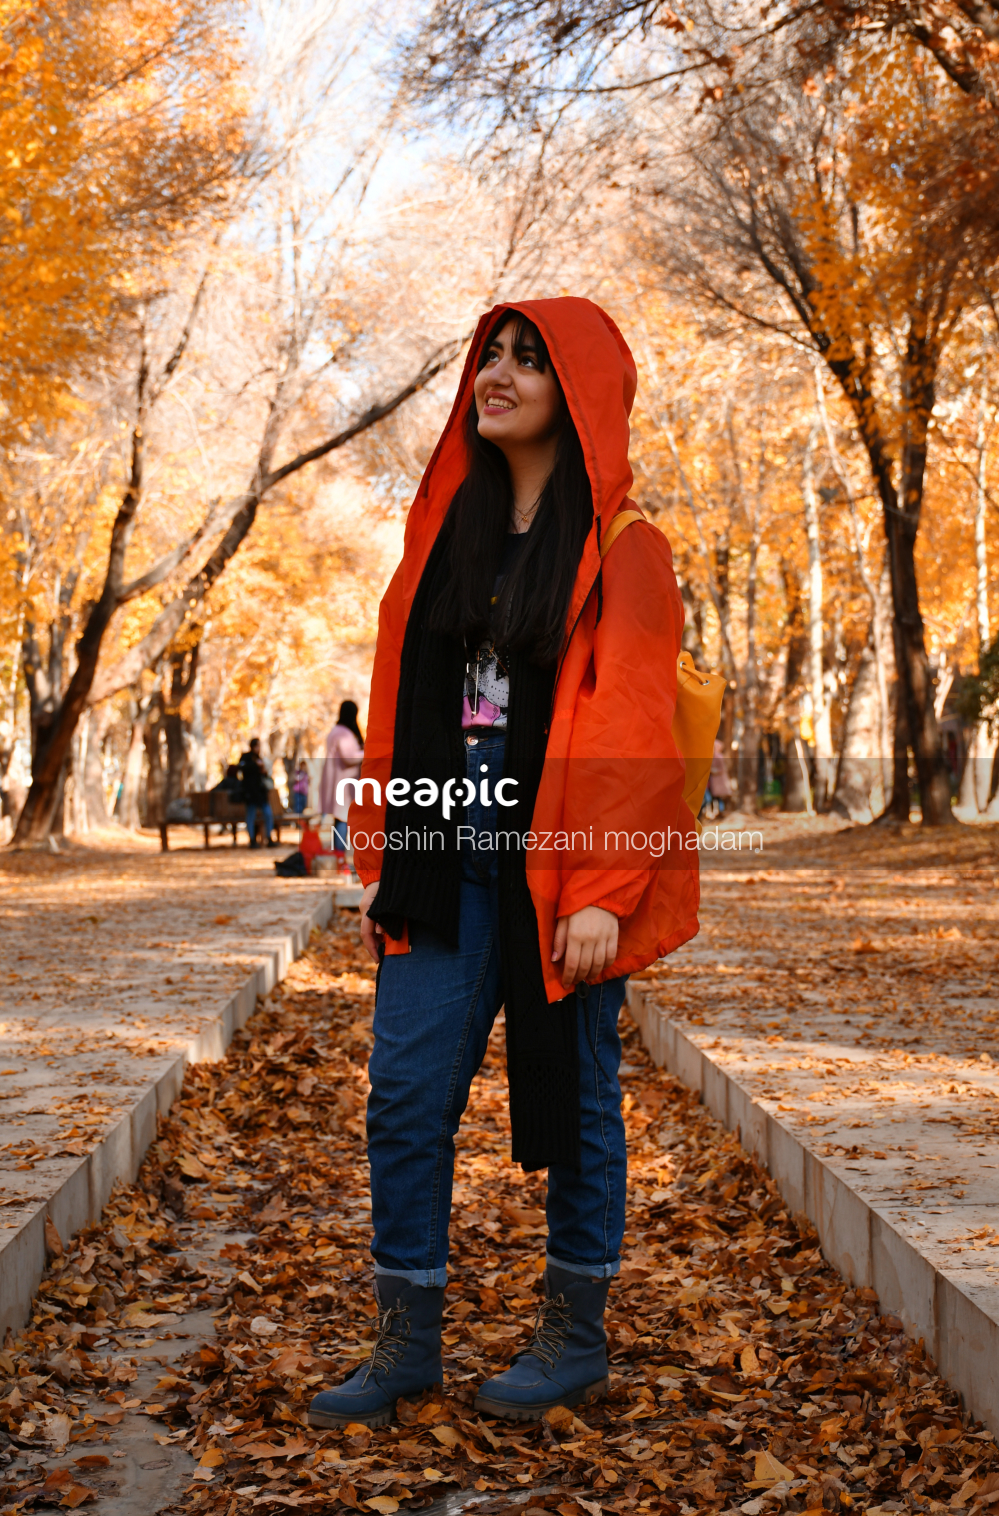 Fall Stock Photo · Meapic